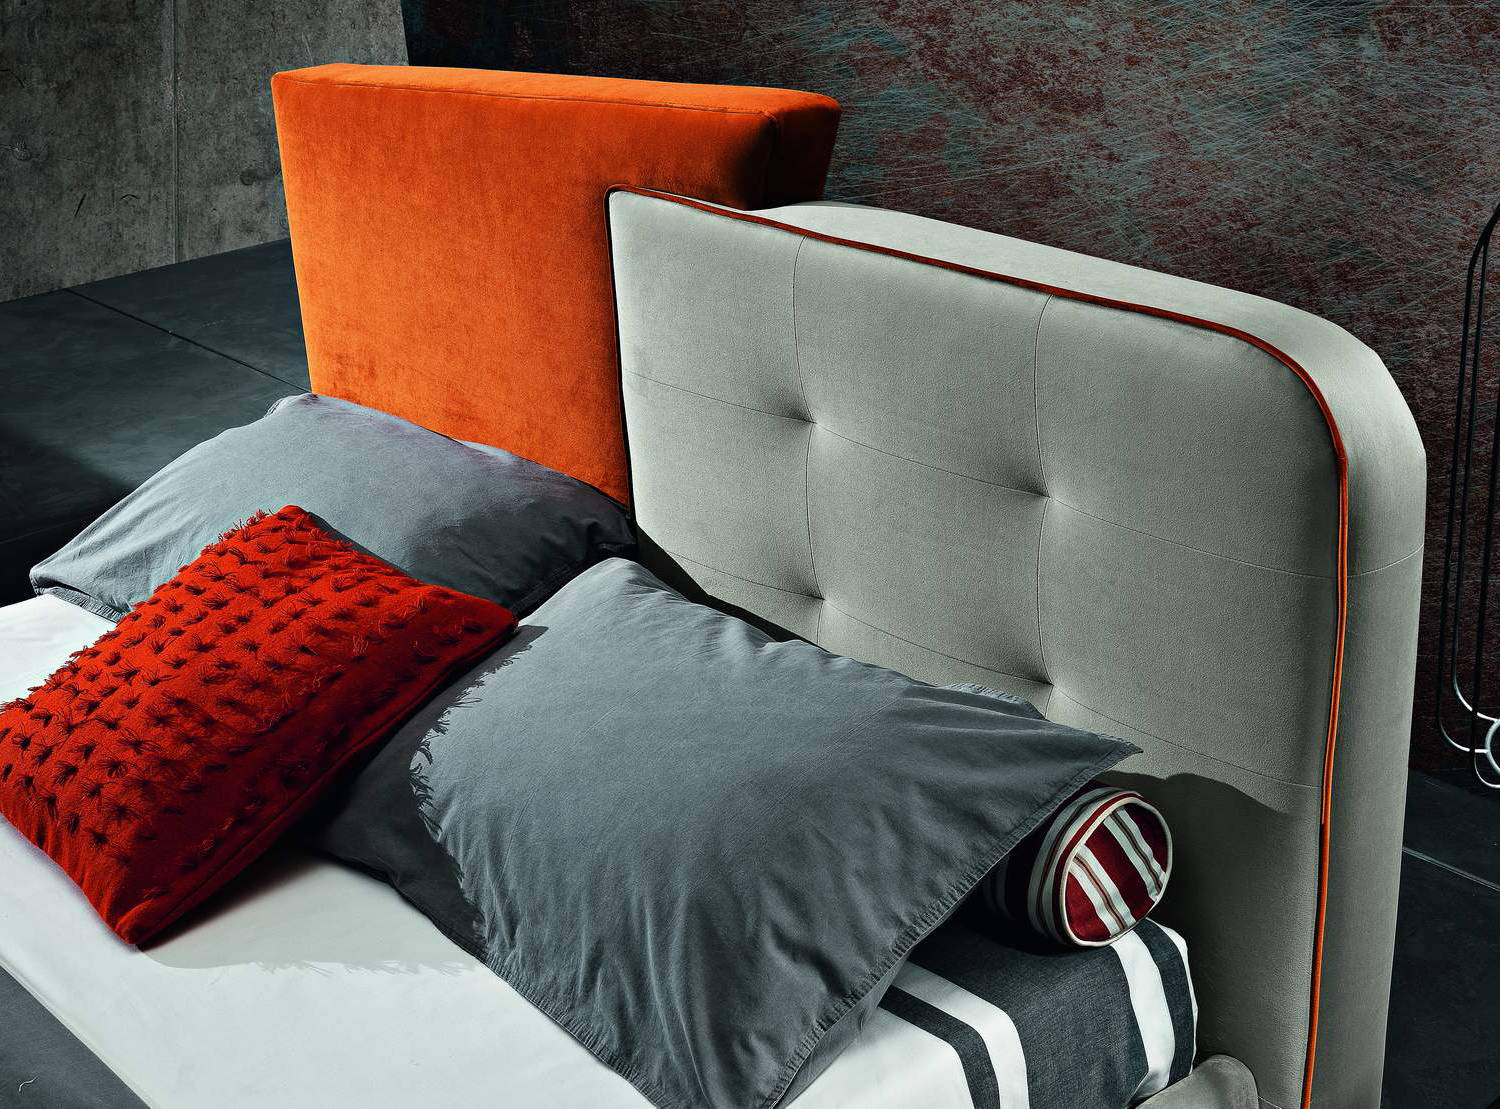 double bed container headboard detail maxhome dixon